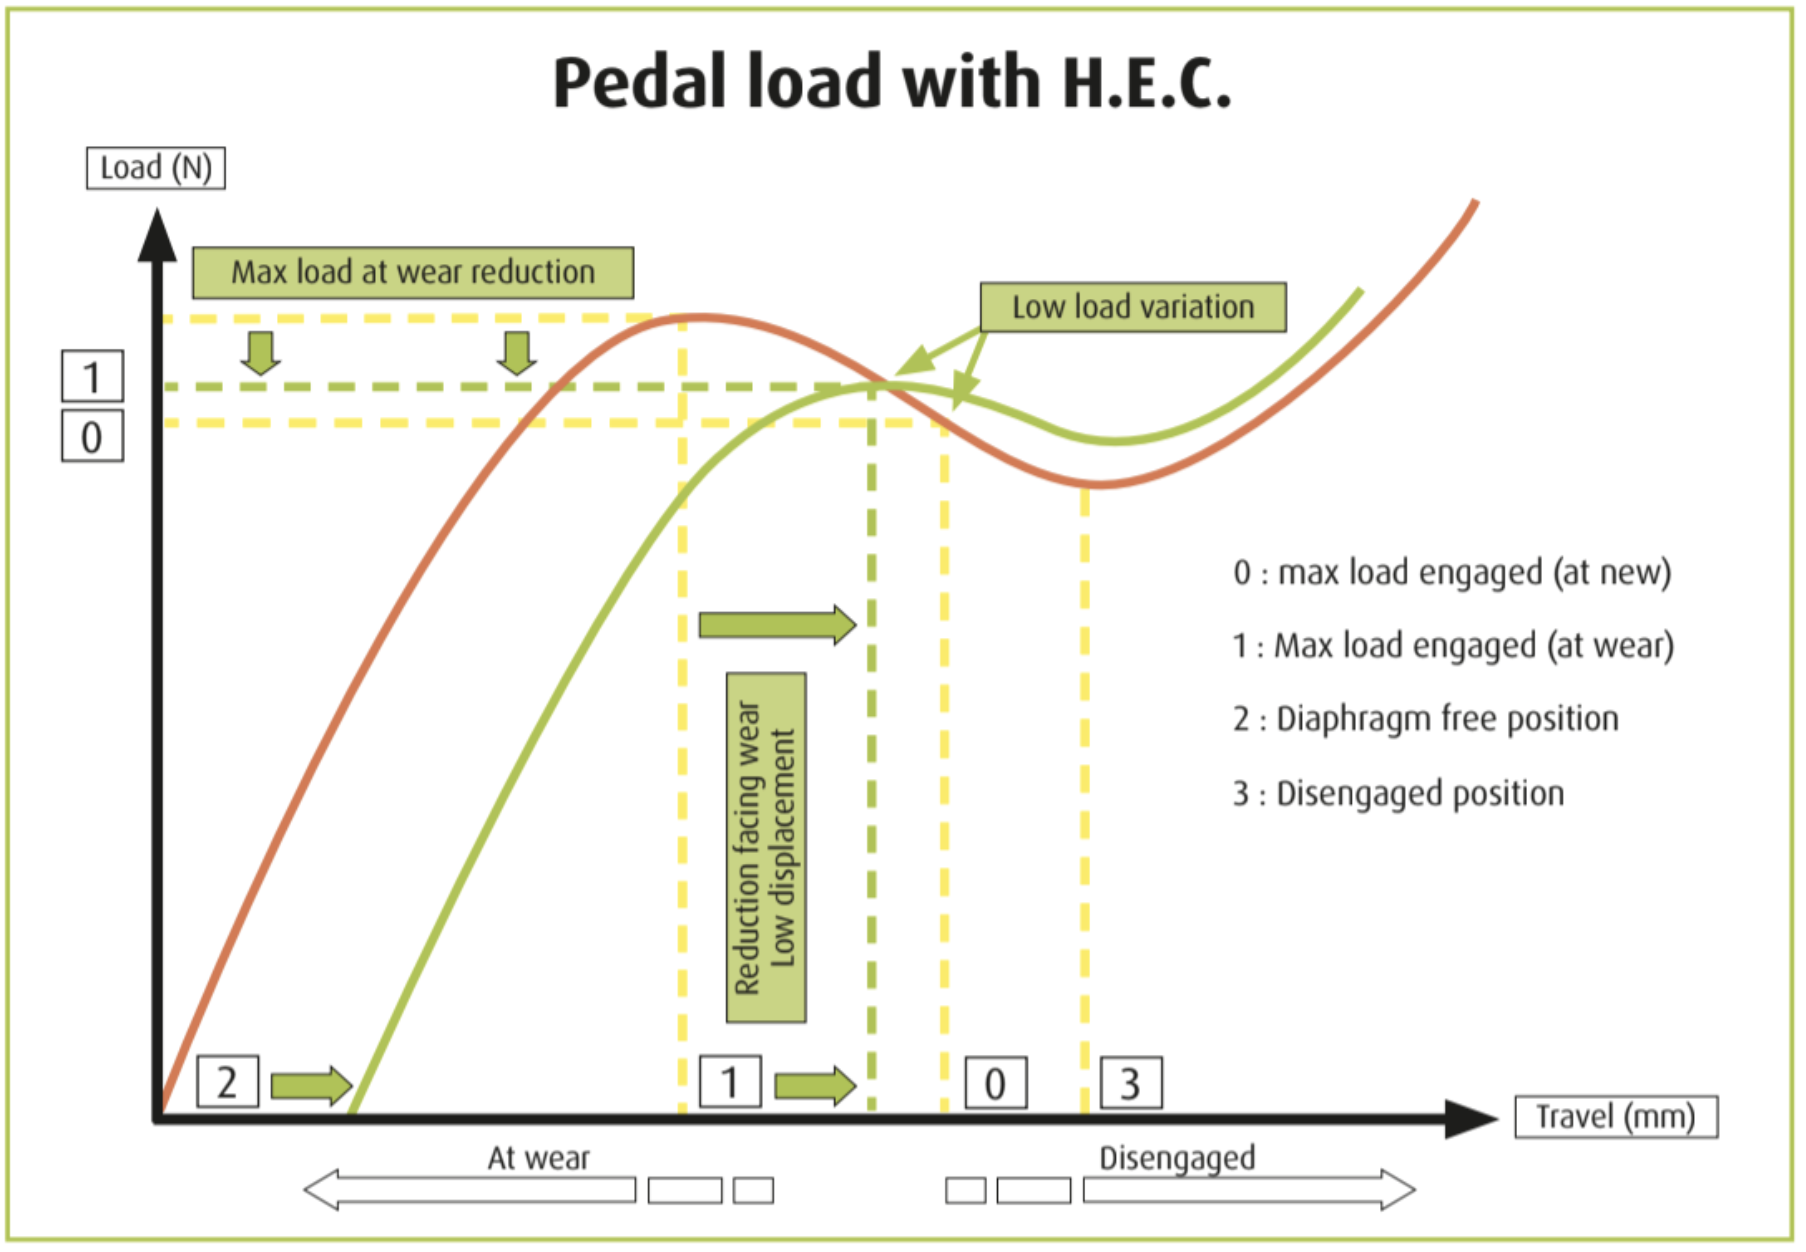 Pedal load with H.E.C.